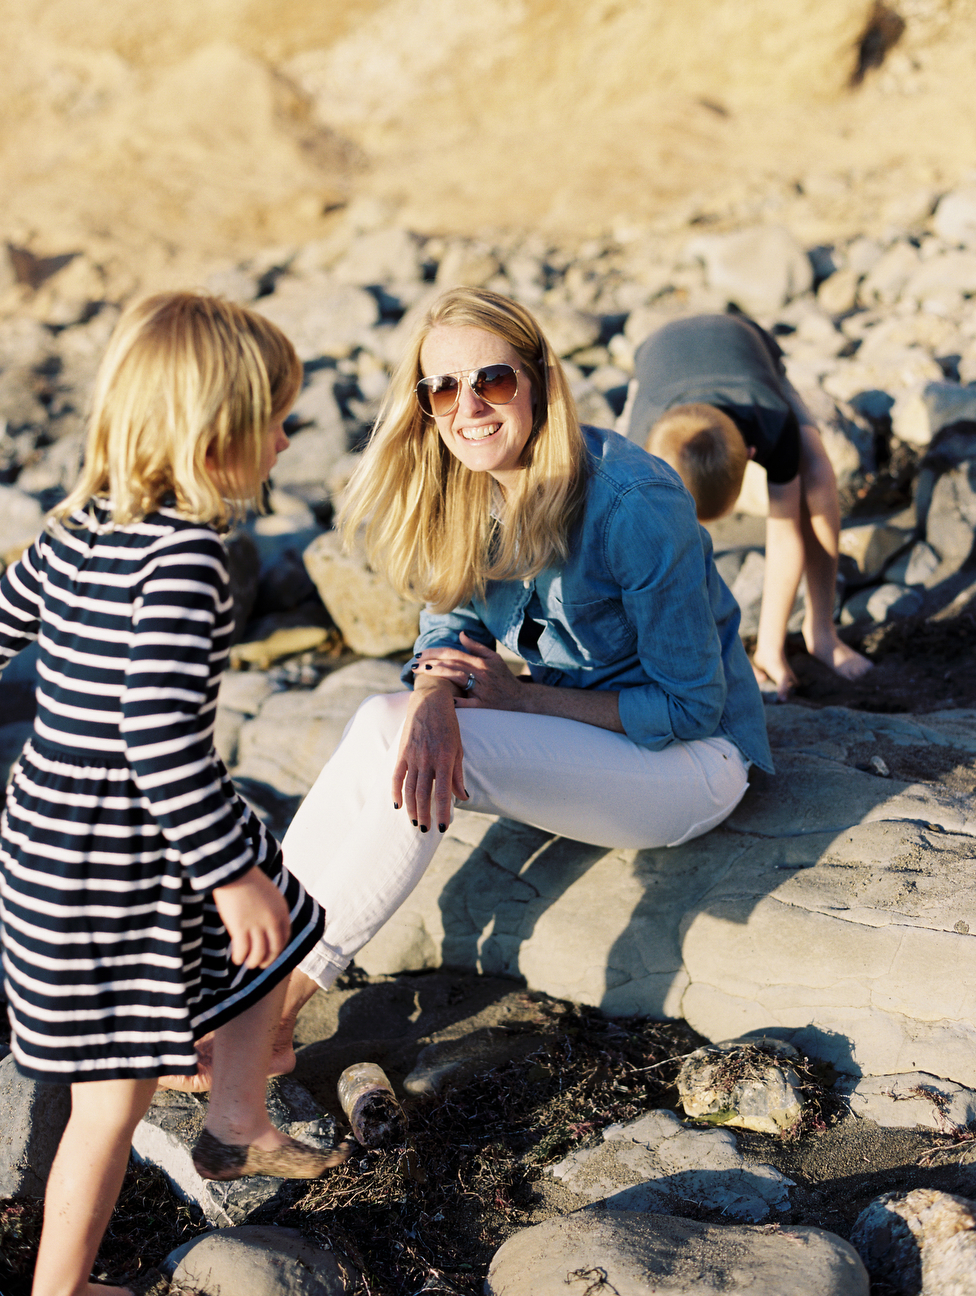 abalone_cove_family_session014.jpg